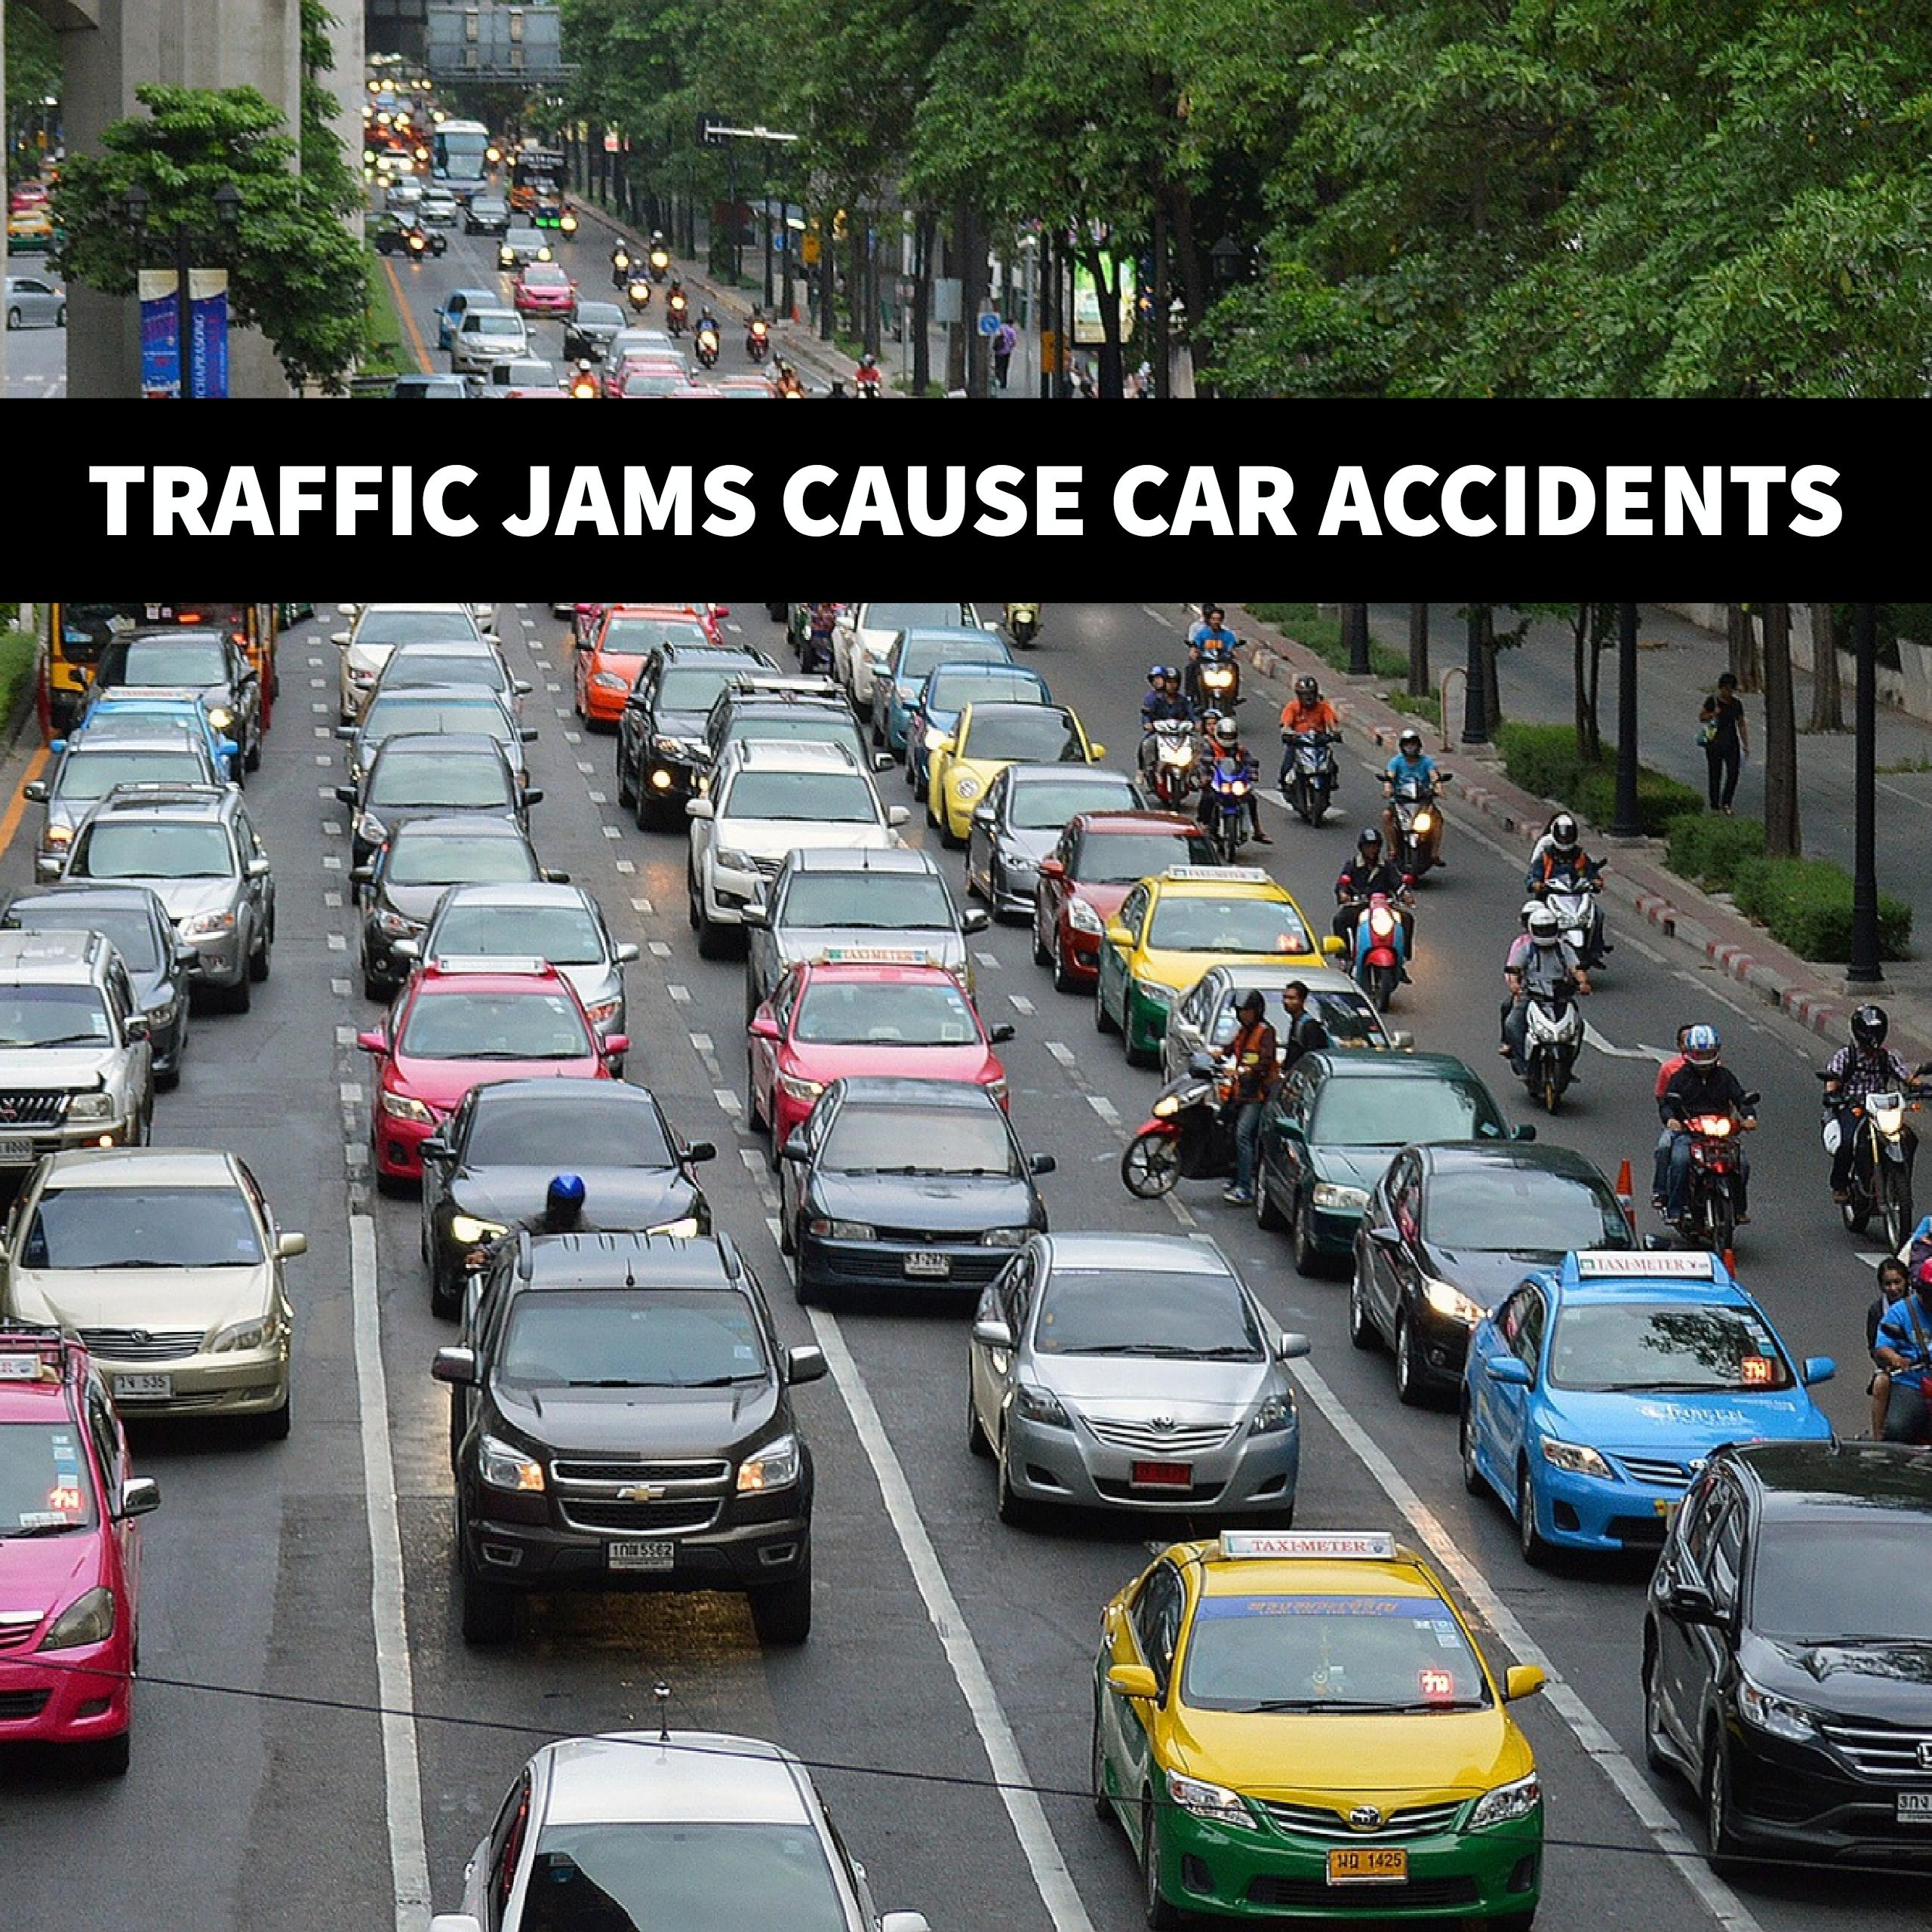 Traffic Jams Are More Than A Nuisance Says Boca Car